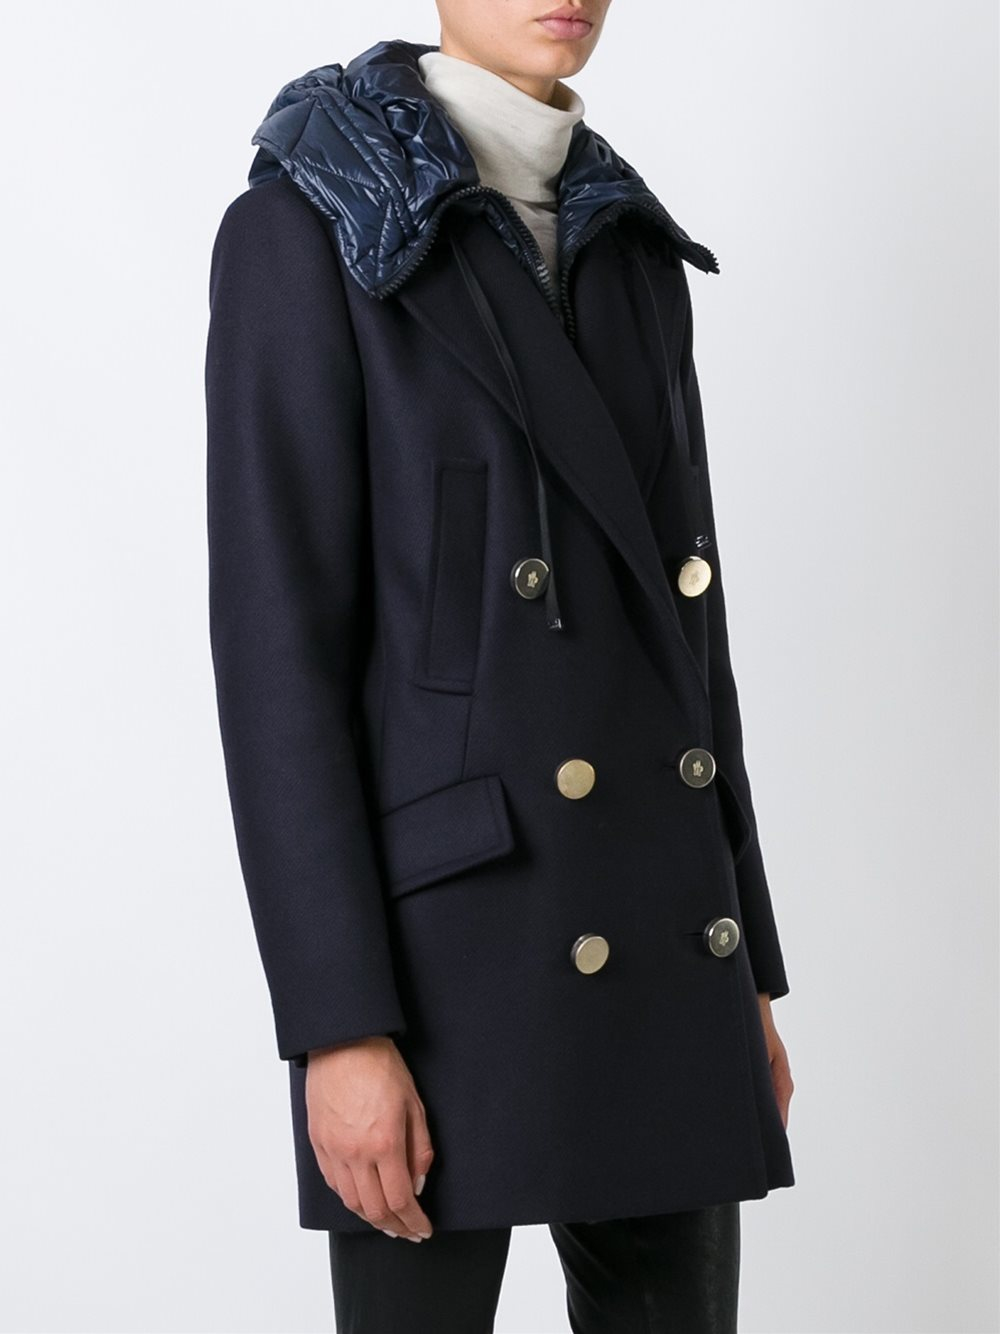 5a73d2871d Theory Oaklane Admiral Crepe Trench Coat - Tradingbasis